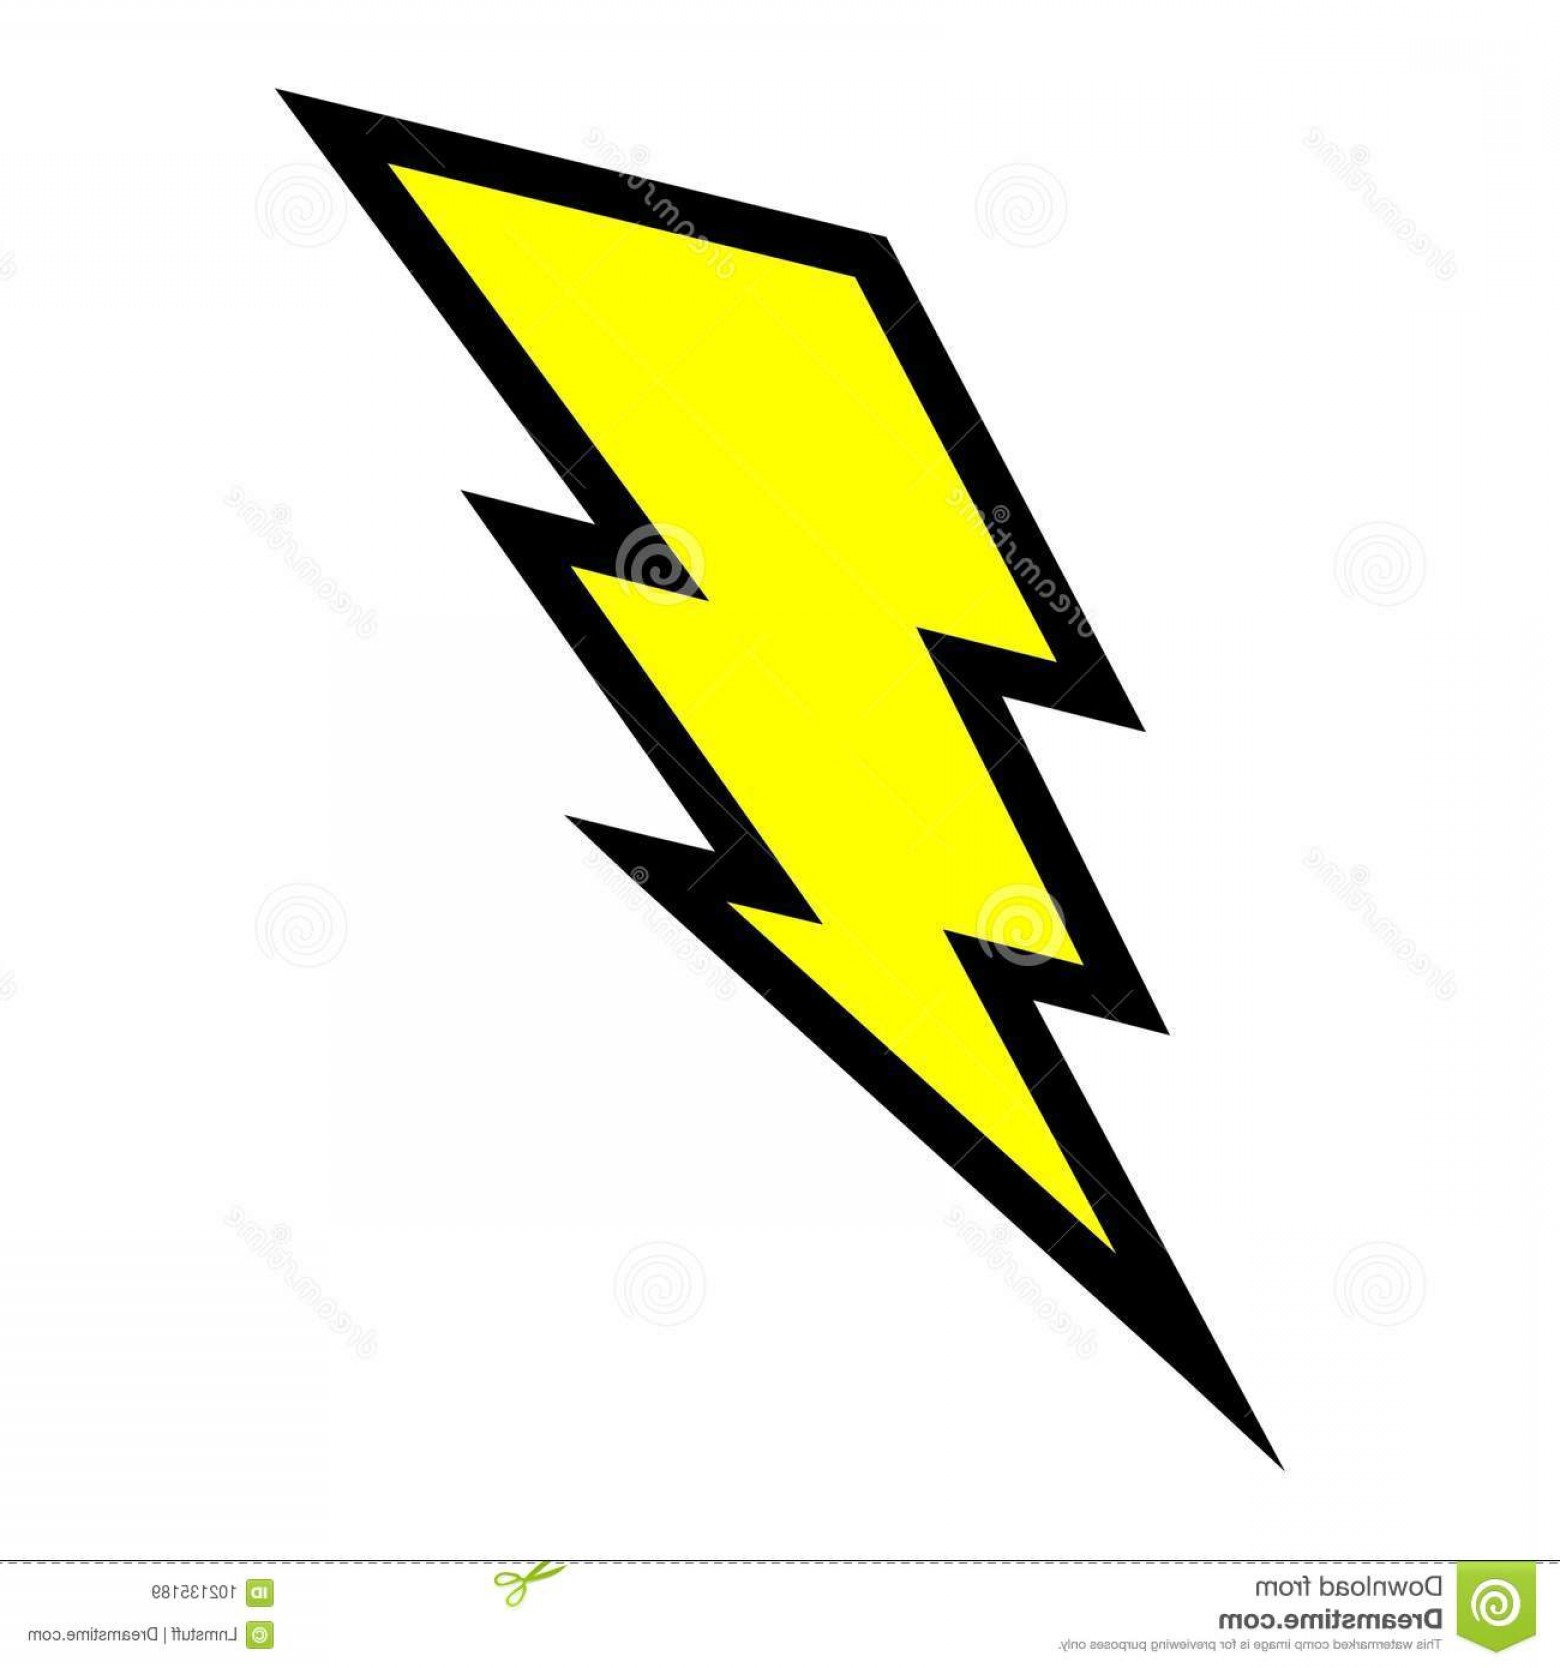 Lightning Bolt Vector Clip Art: Electric Lightning Bolt Vector High Quality Illustration Yellow Electric Lightning Bolt Isolated White Background Full Image